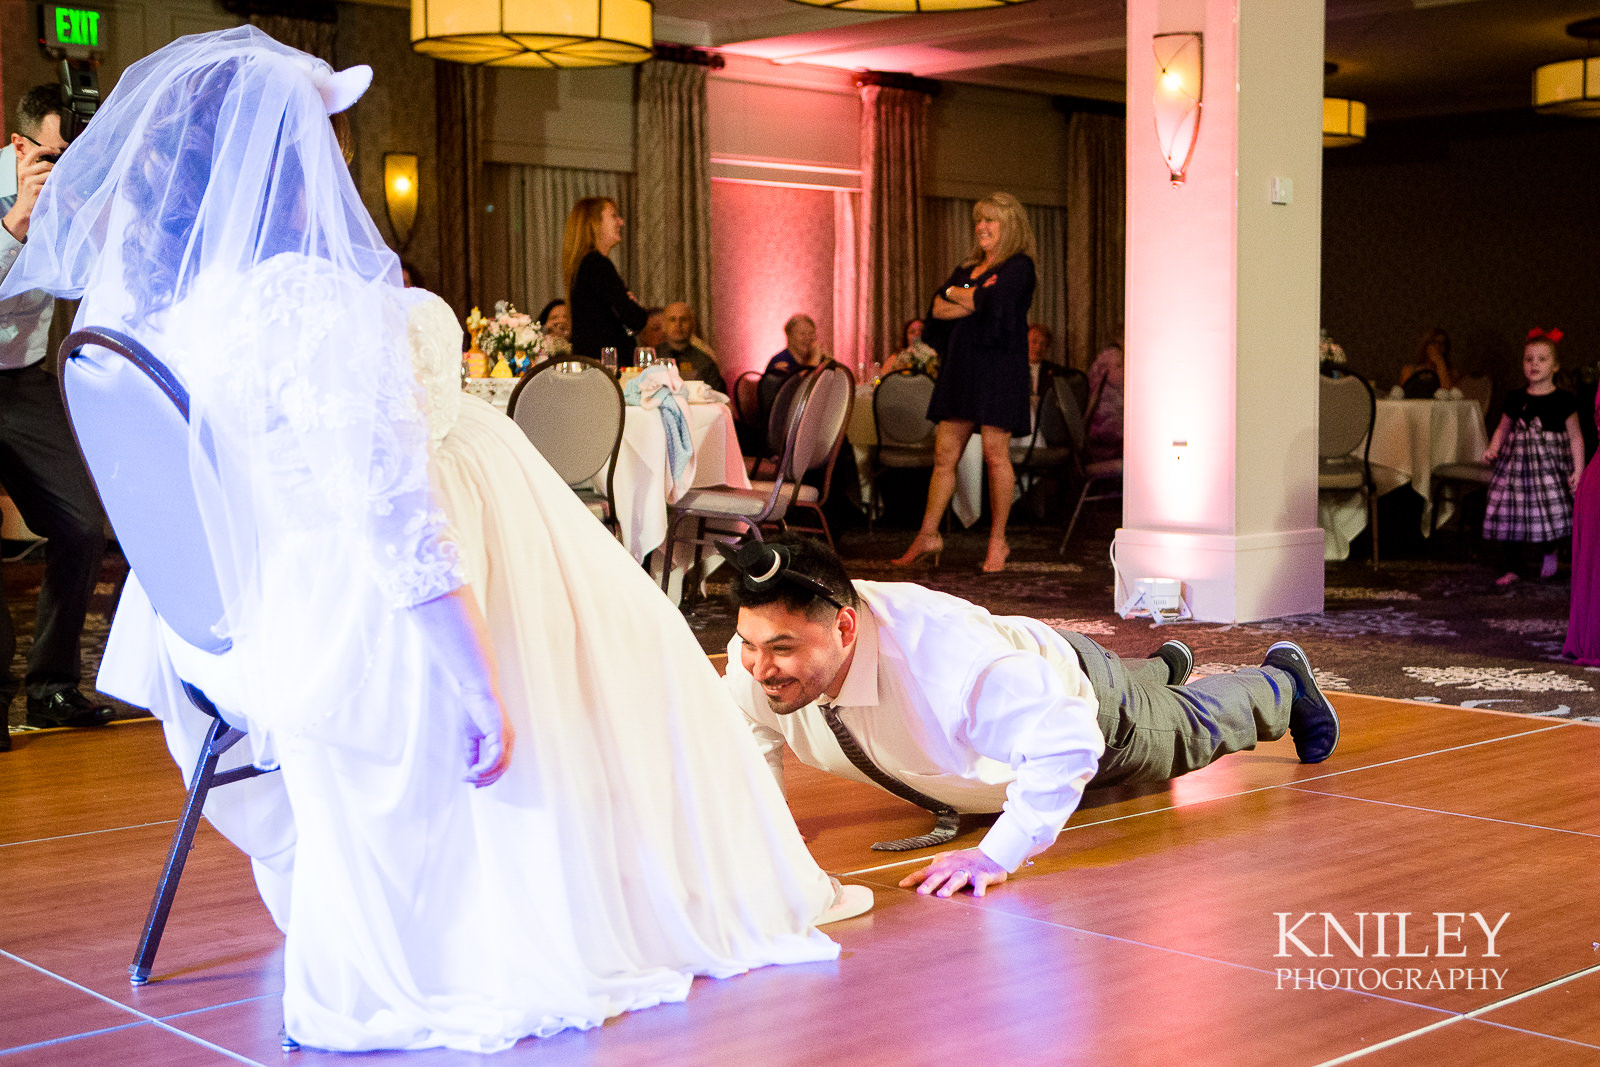 108 - Woodcliff Hotel - Rochester NY wedding photo - Kniley Photography.jpg